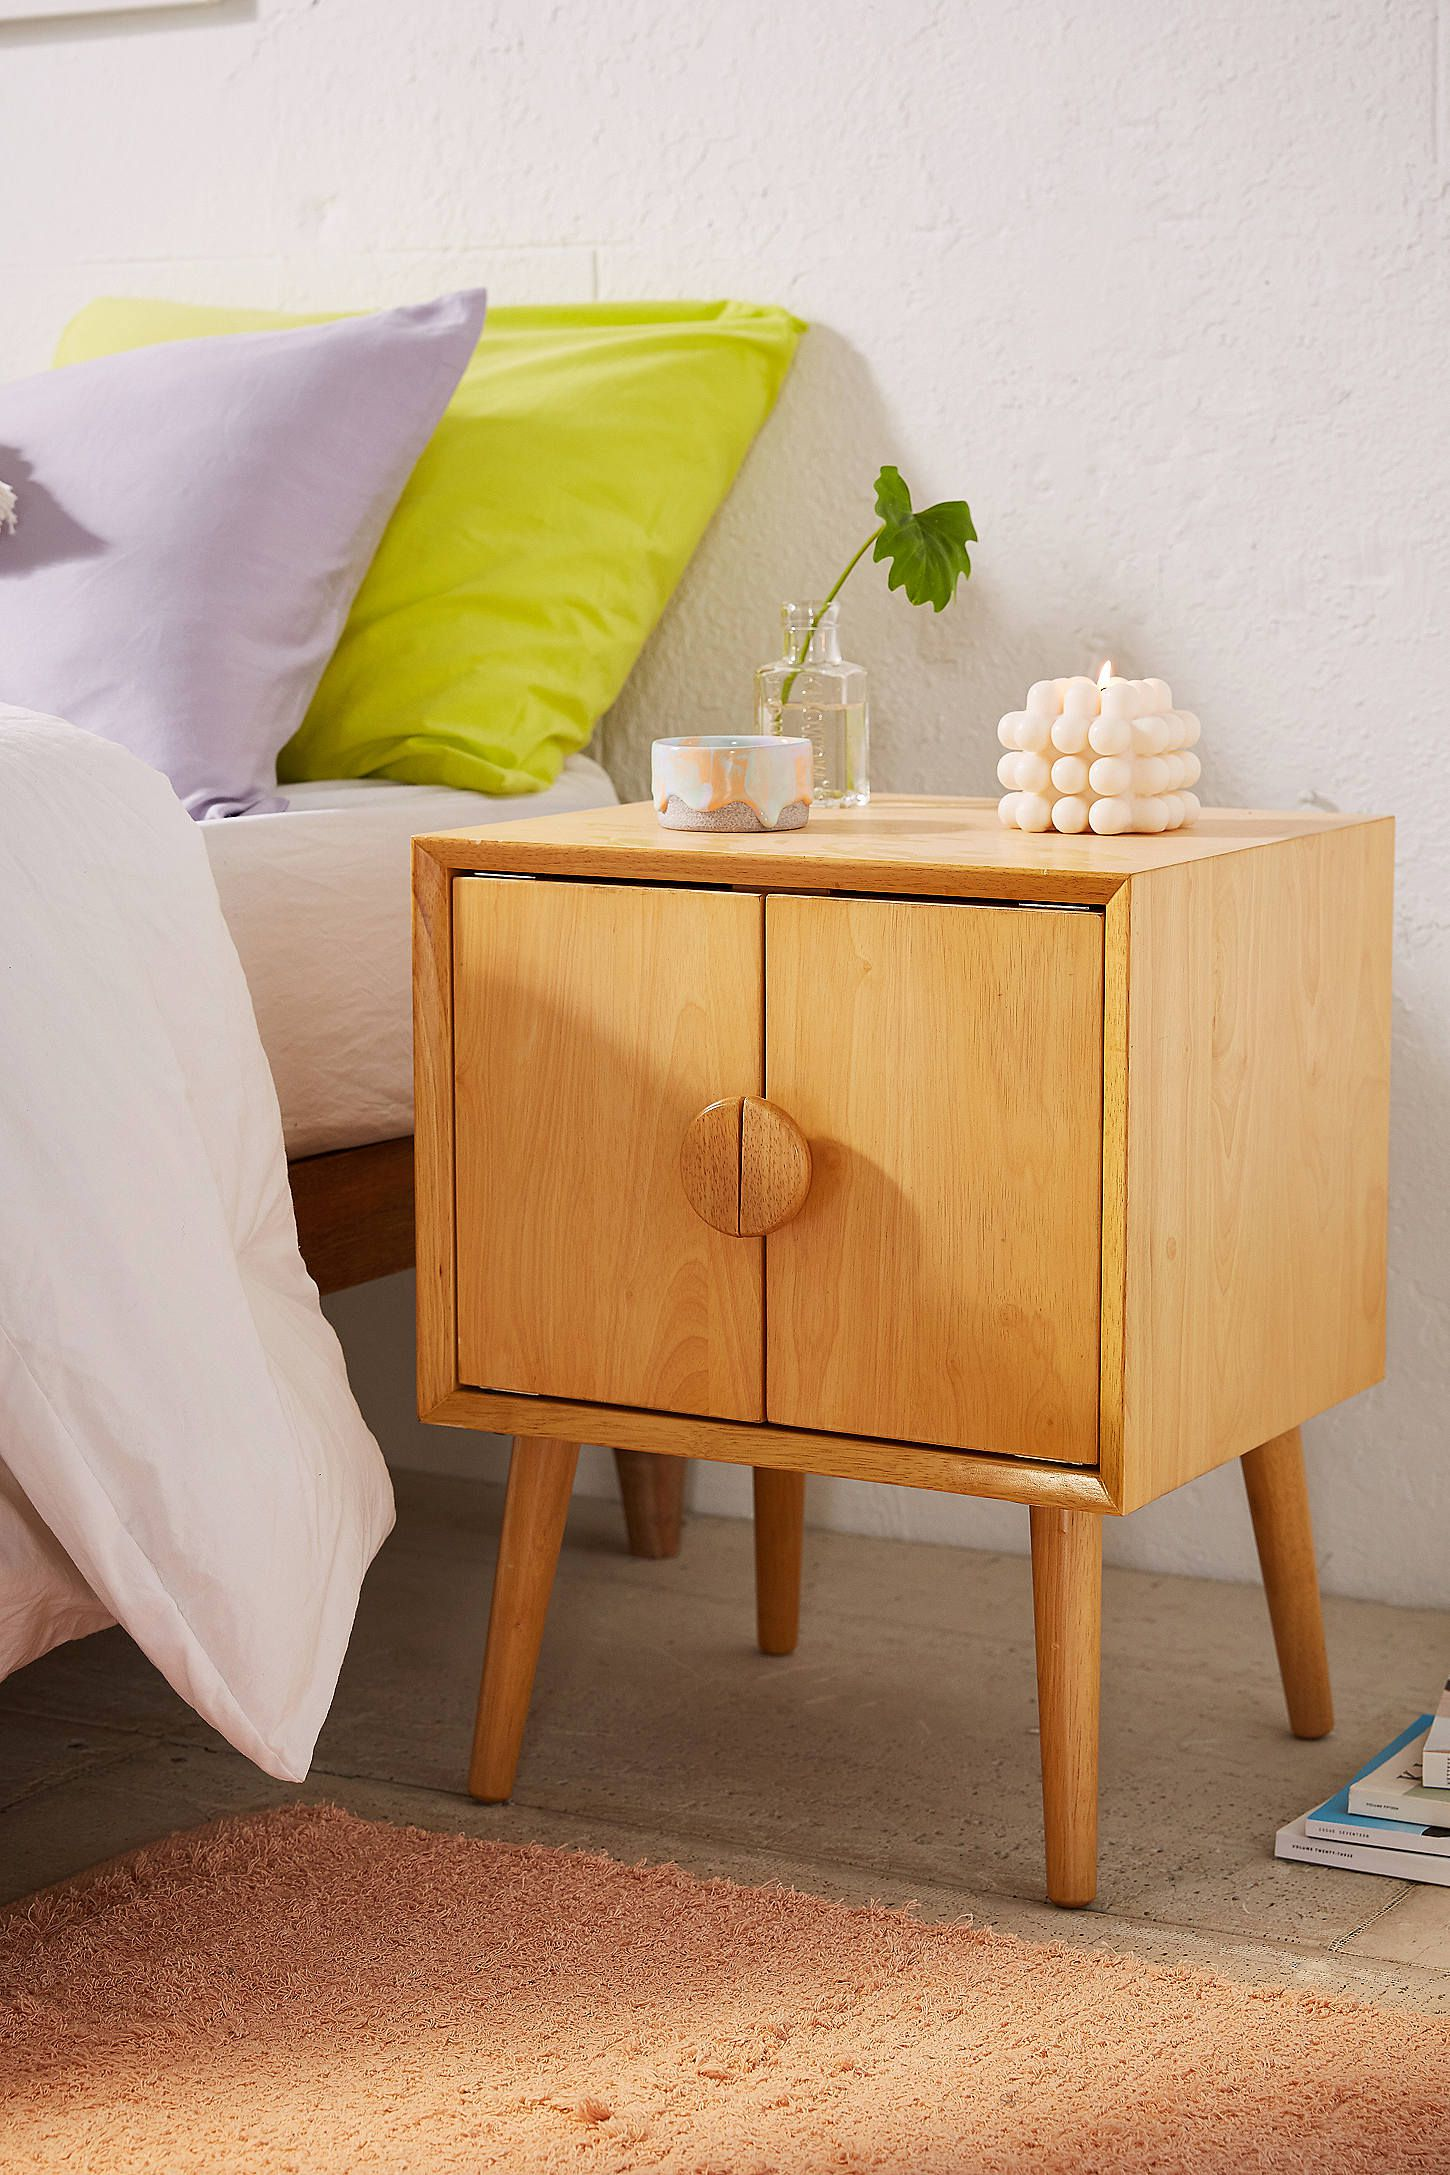 modern nightstands for every bedroom style chic bedside tables tachuri accent table target make your own barn door cherry wood corner green french round side small white cabinet